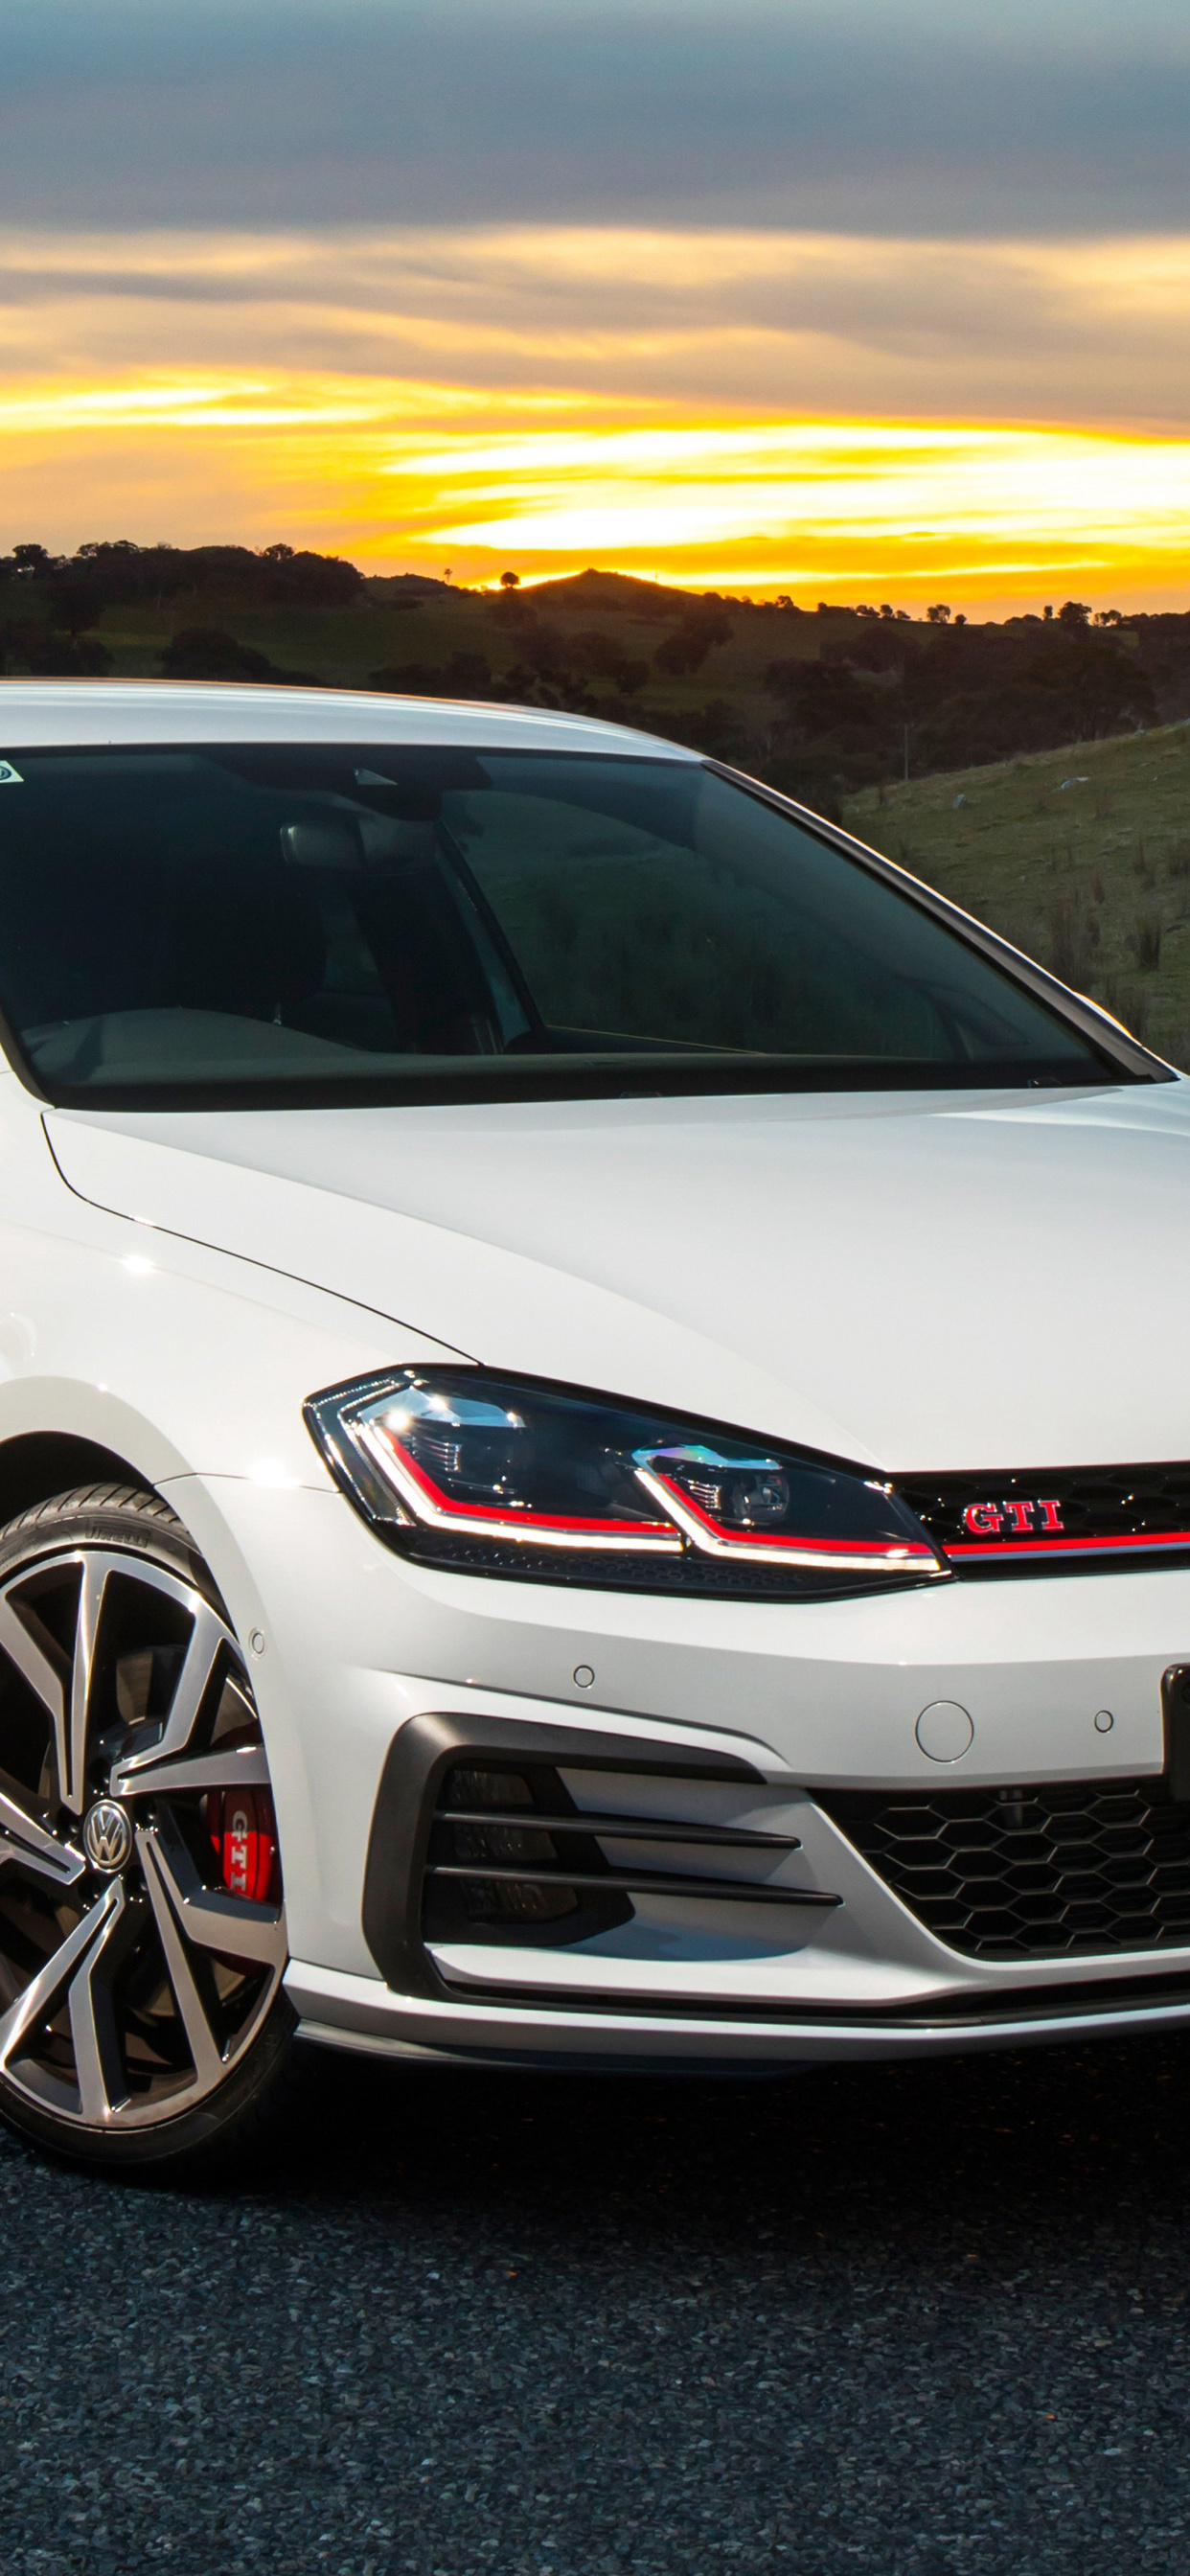 1242x2688 Volkswagen Golf Gti Performance Edition 2017 Iphone Xs Max Hd 4k Wallpapers Images Backgrounds Photos And Pictures